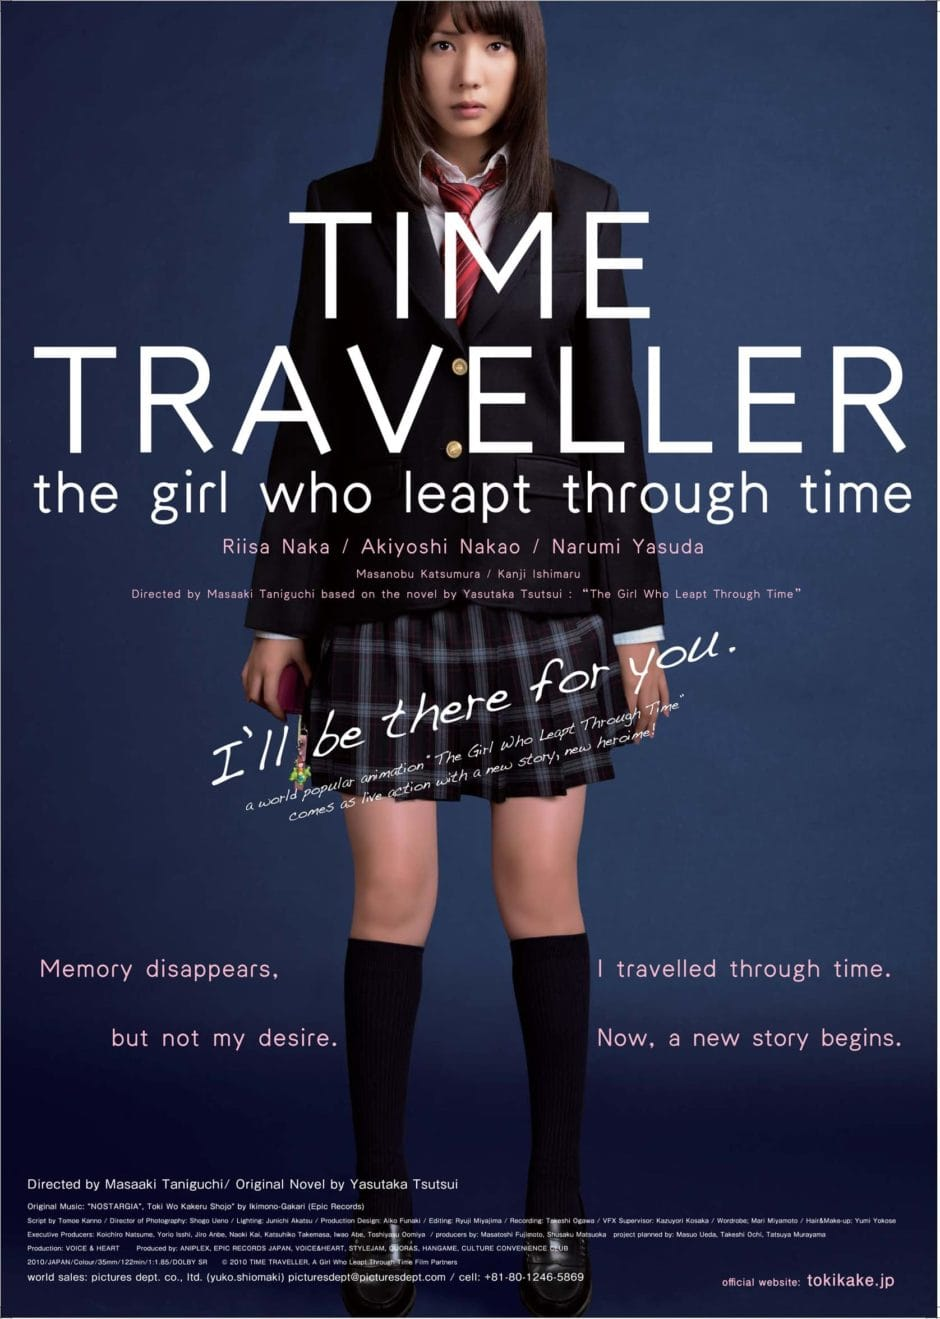 poster_Time_Traveller-the_girl_who_leapt_through_time-p1